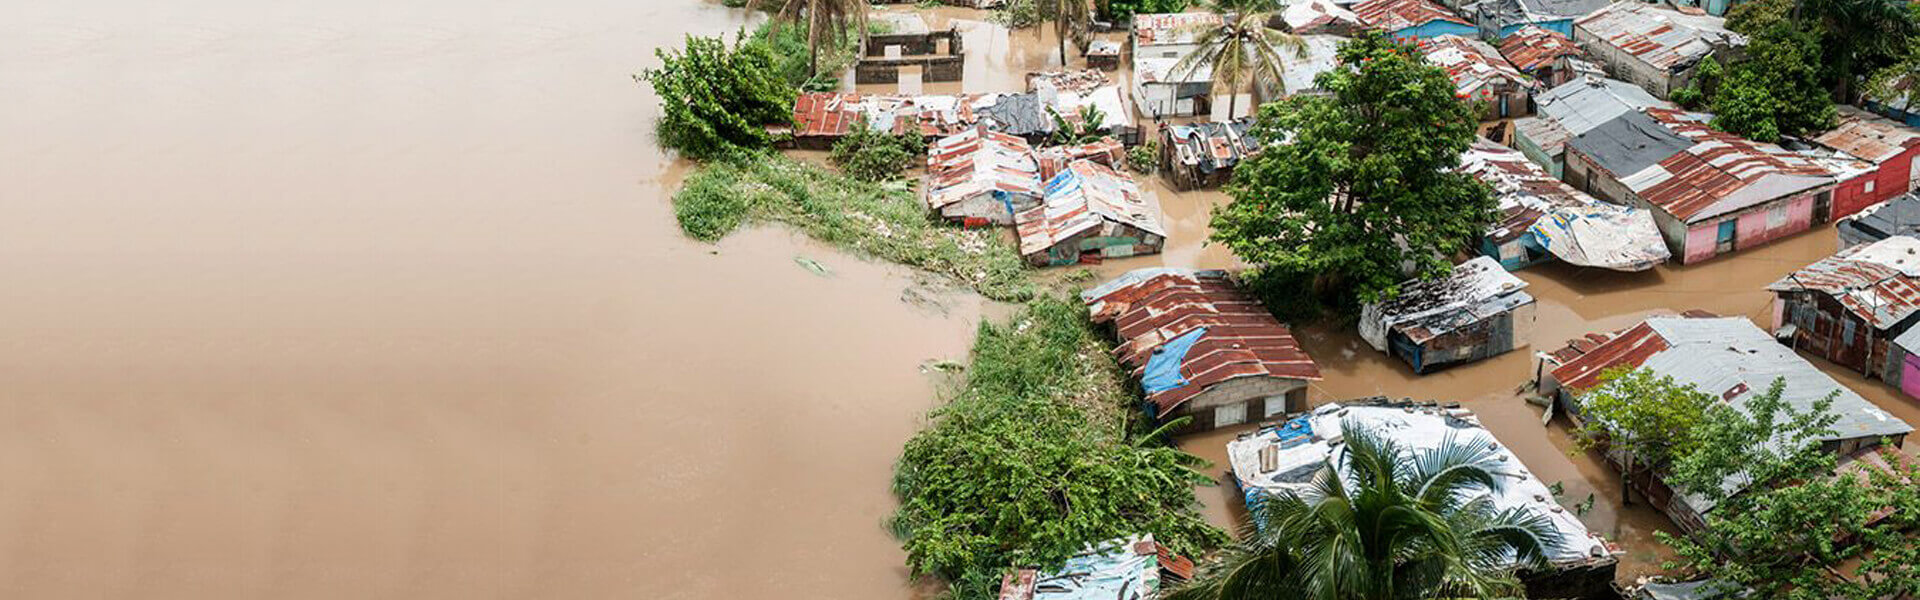 PROVIDING DISASTER AND HUMANITARIAN RELIEF